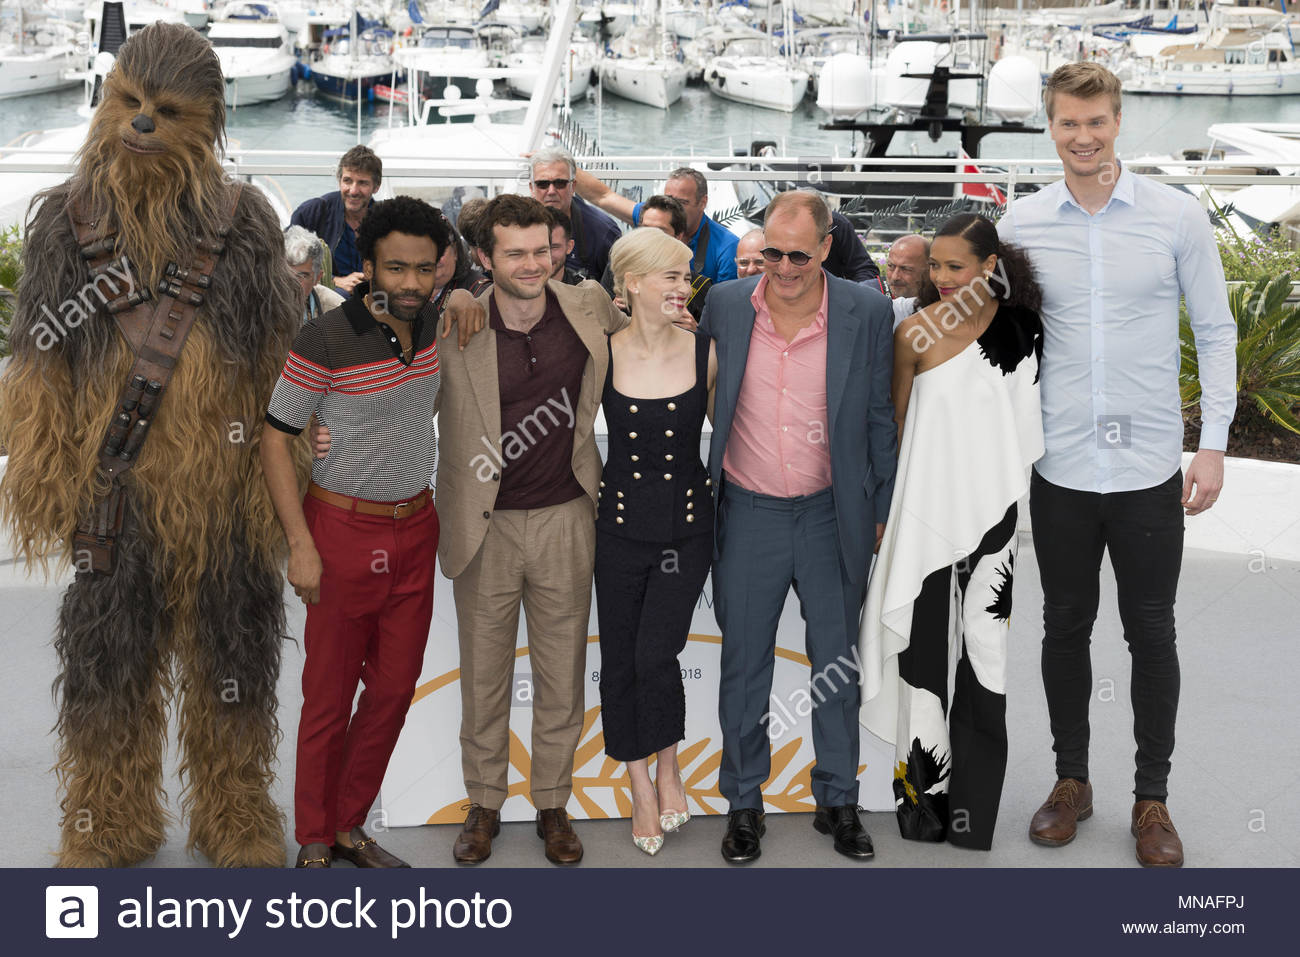 Cannes, France. 15th May, 2018. (FromL) Chewbacca, US actor Donald Glover, US actor Alden Ehrenreich, British actress Emilia Clarke, US actor Woody Harrelson, British actress Thandie Newton and Finnish actor Joonas Suotamo pose on May 15, 2018 during a photocall for the film 'Solo : A Star Wars Story' at the 71st edition of the Cannes Film Festival in Cannes, southern France. (c) copyright Credit: CrowdSpark/Alamy Live News - Stock Image